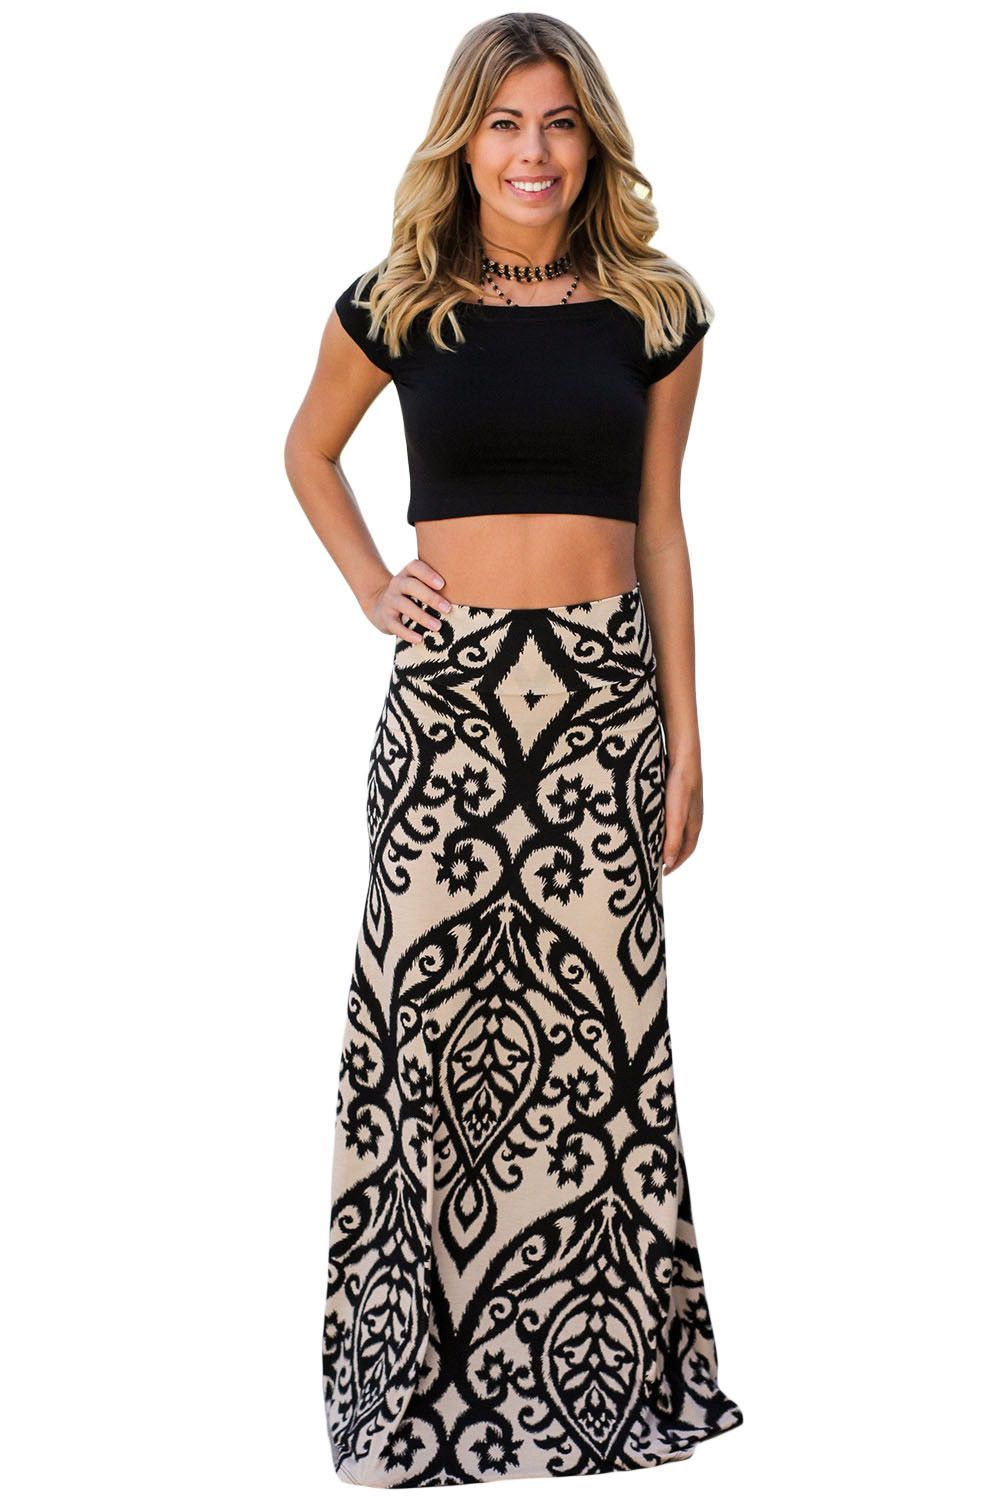 Women black tendril printed maxi skirt long summer beach plus boho